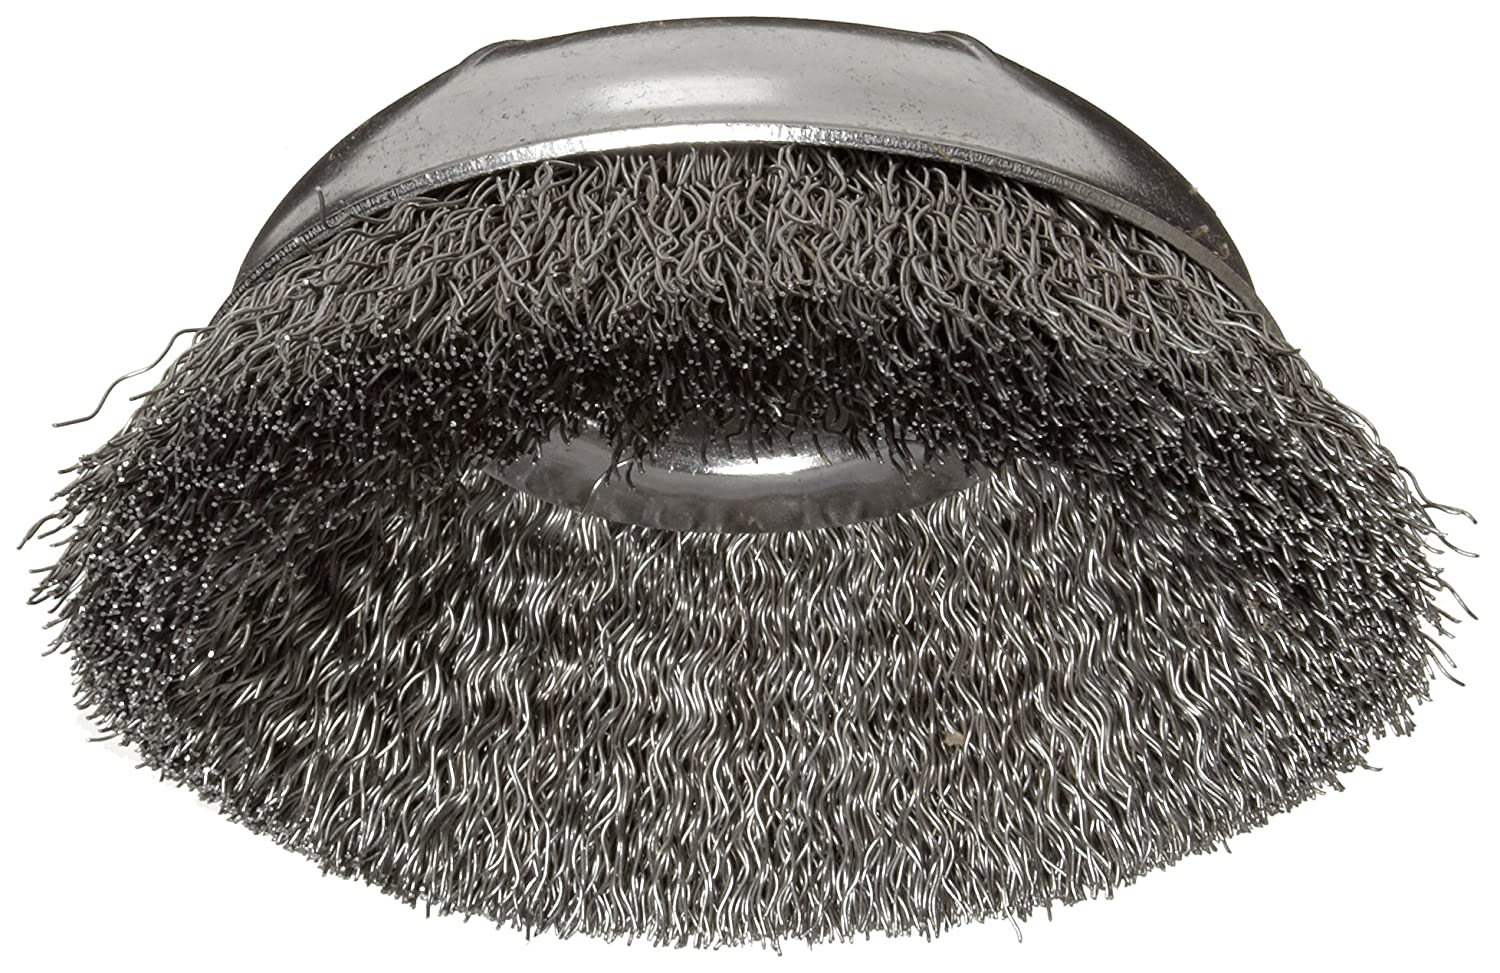 Weiler Wire Cup Brush 0.014 Wire Diameter 3//8-24 Arbor 3 Diameter Pack of 1 Steel 1 Bristle Length Threaded Hole 14000 rpm Crimped Wire